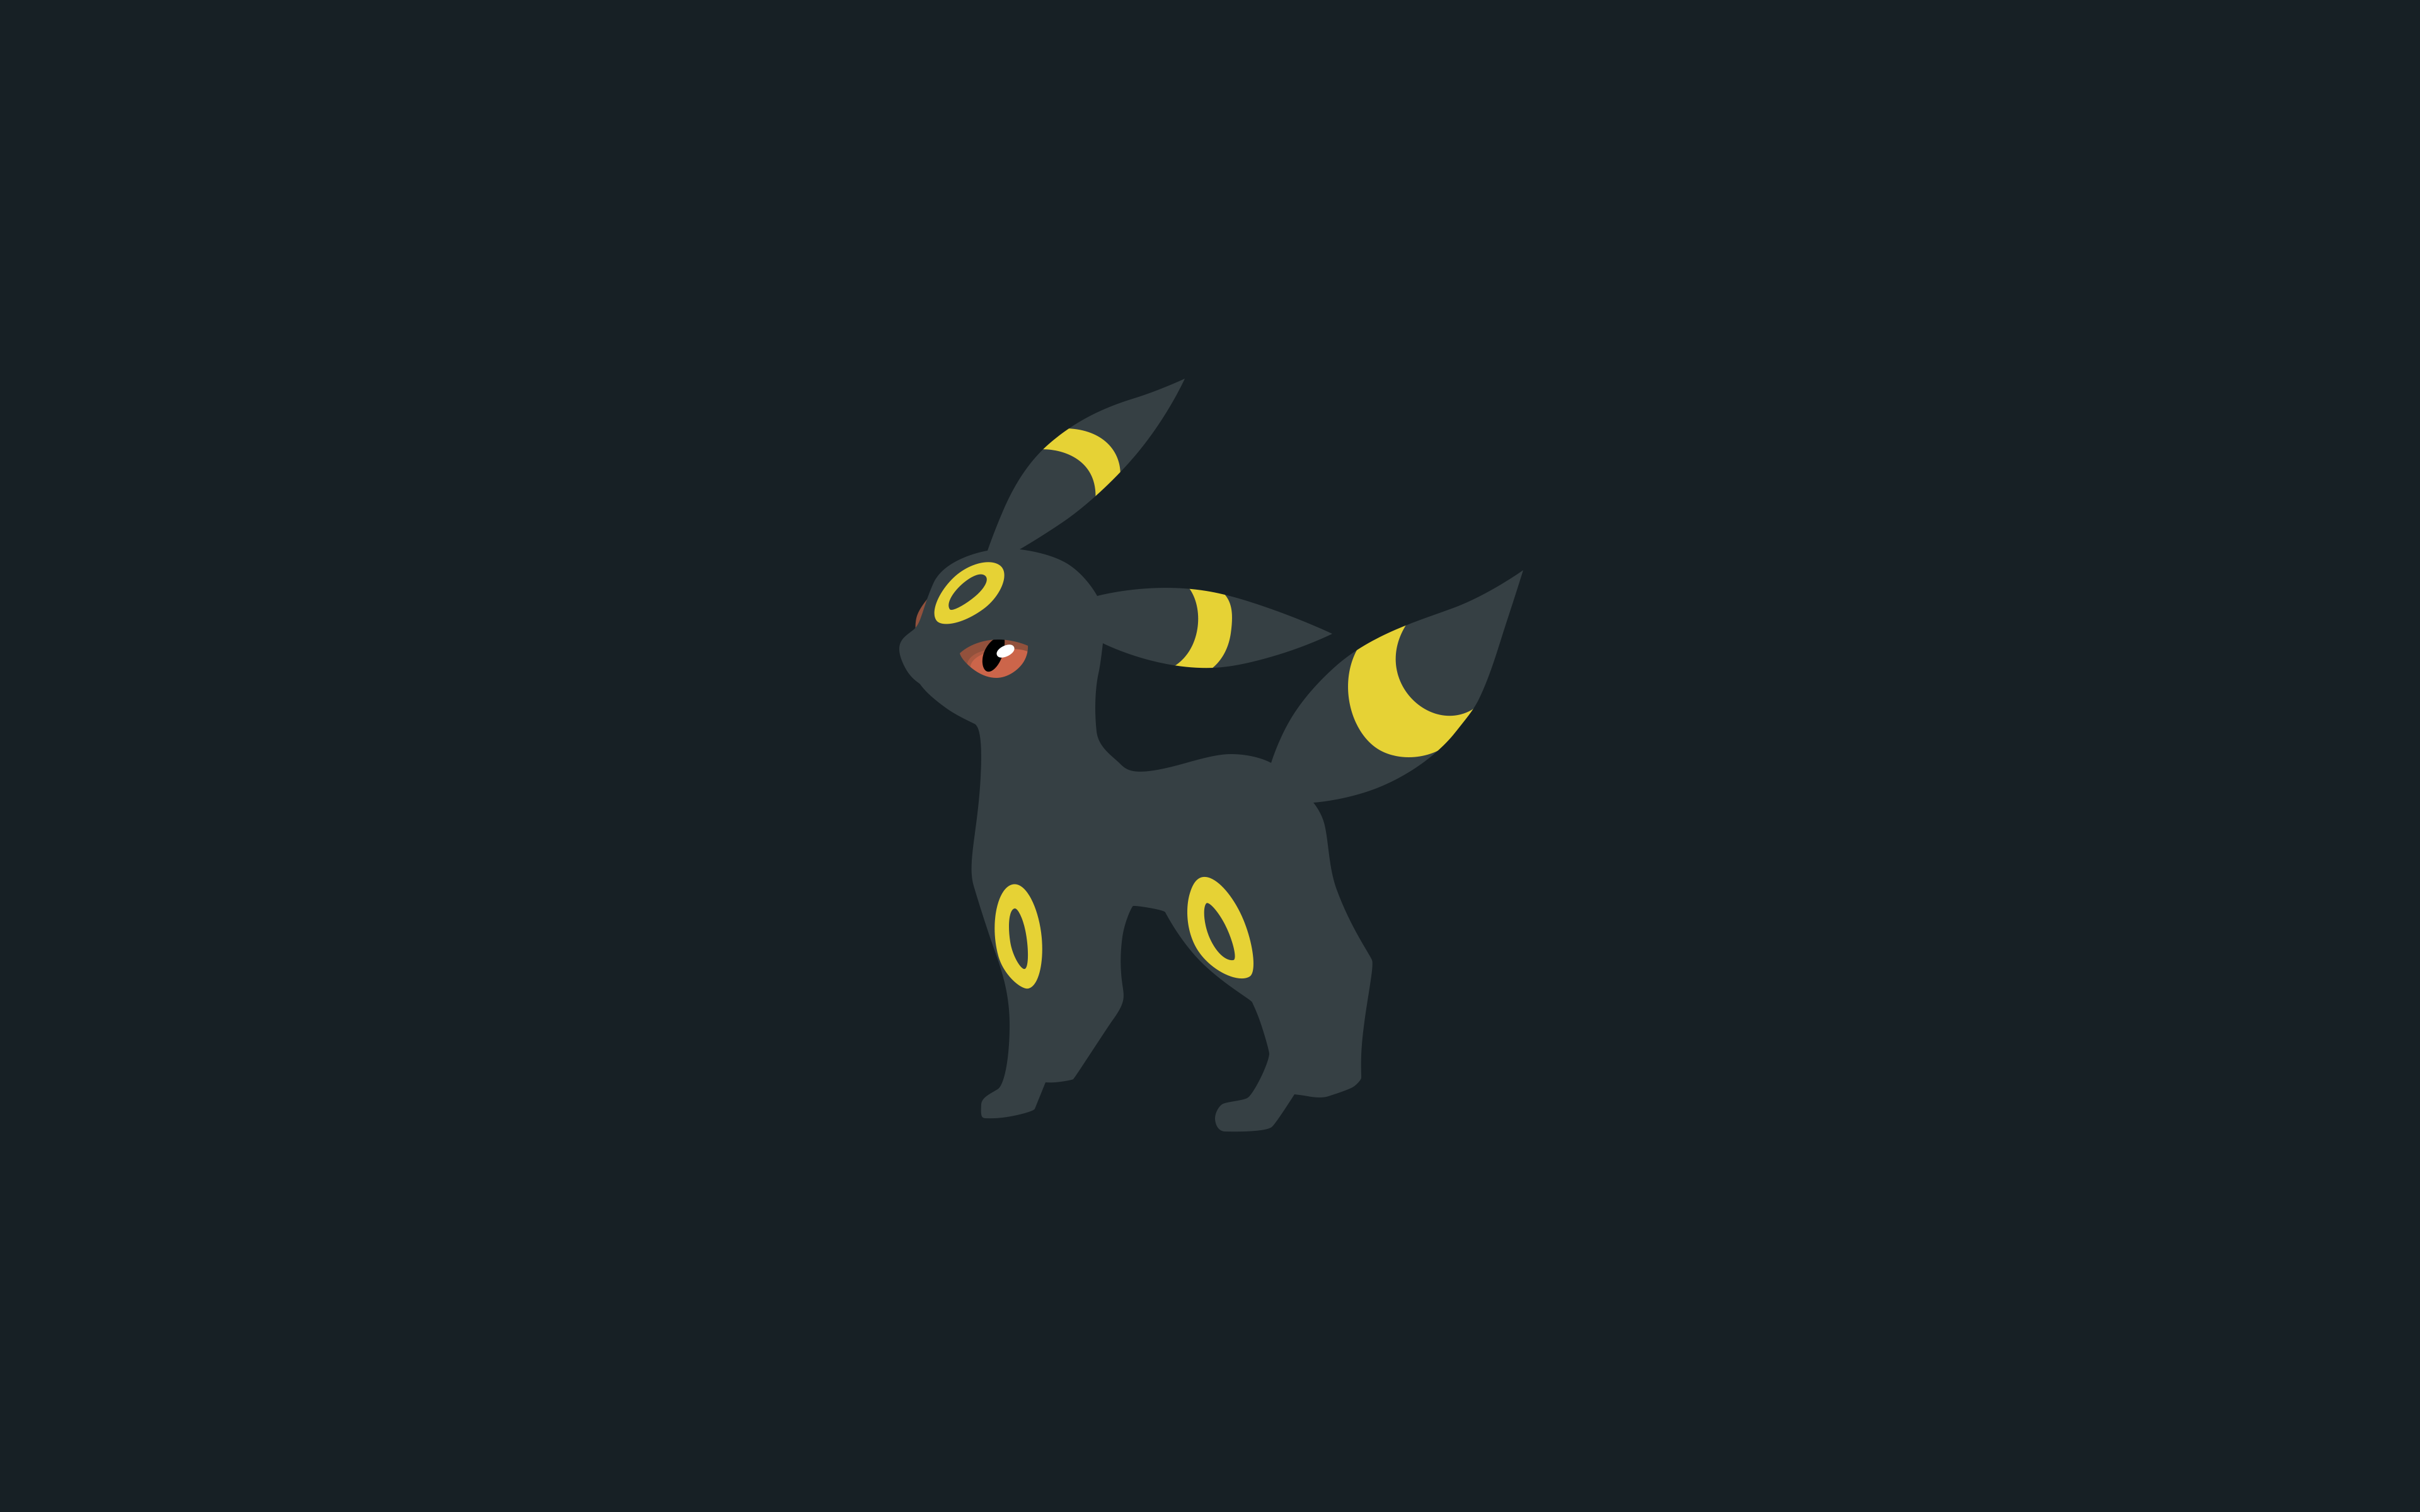 Umbreon Pokeball Pokemon Art Images | Pokemon Images